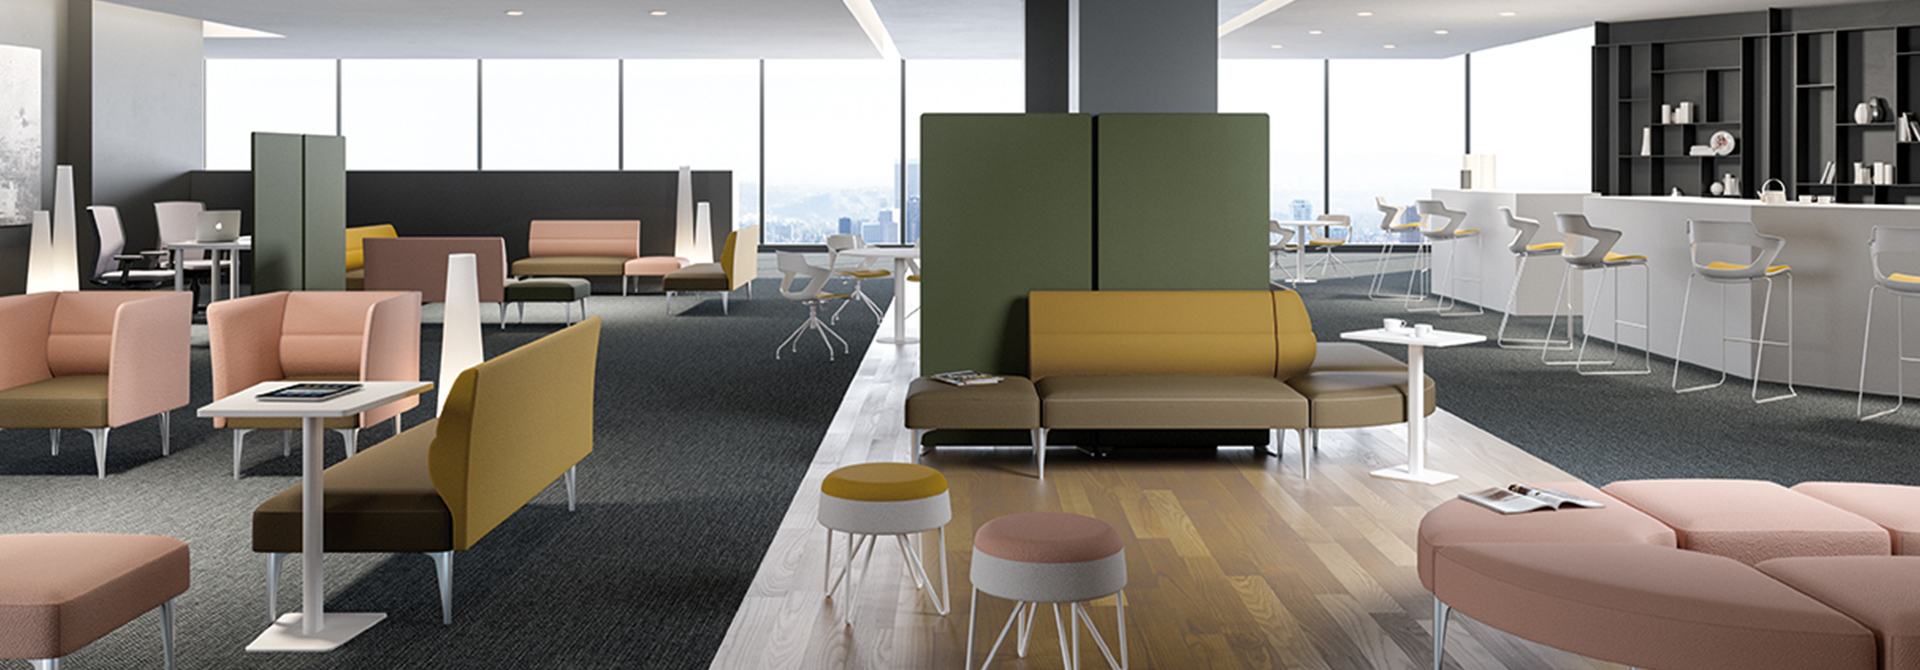 Sinua Panca | Soft Seating - Smart Office | LTContract